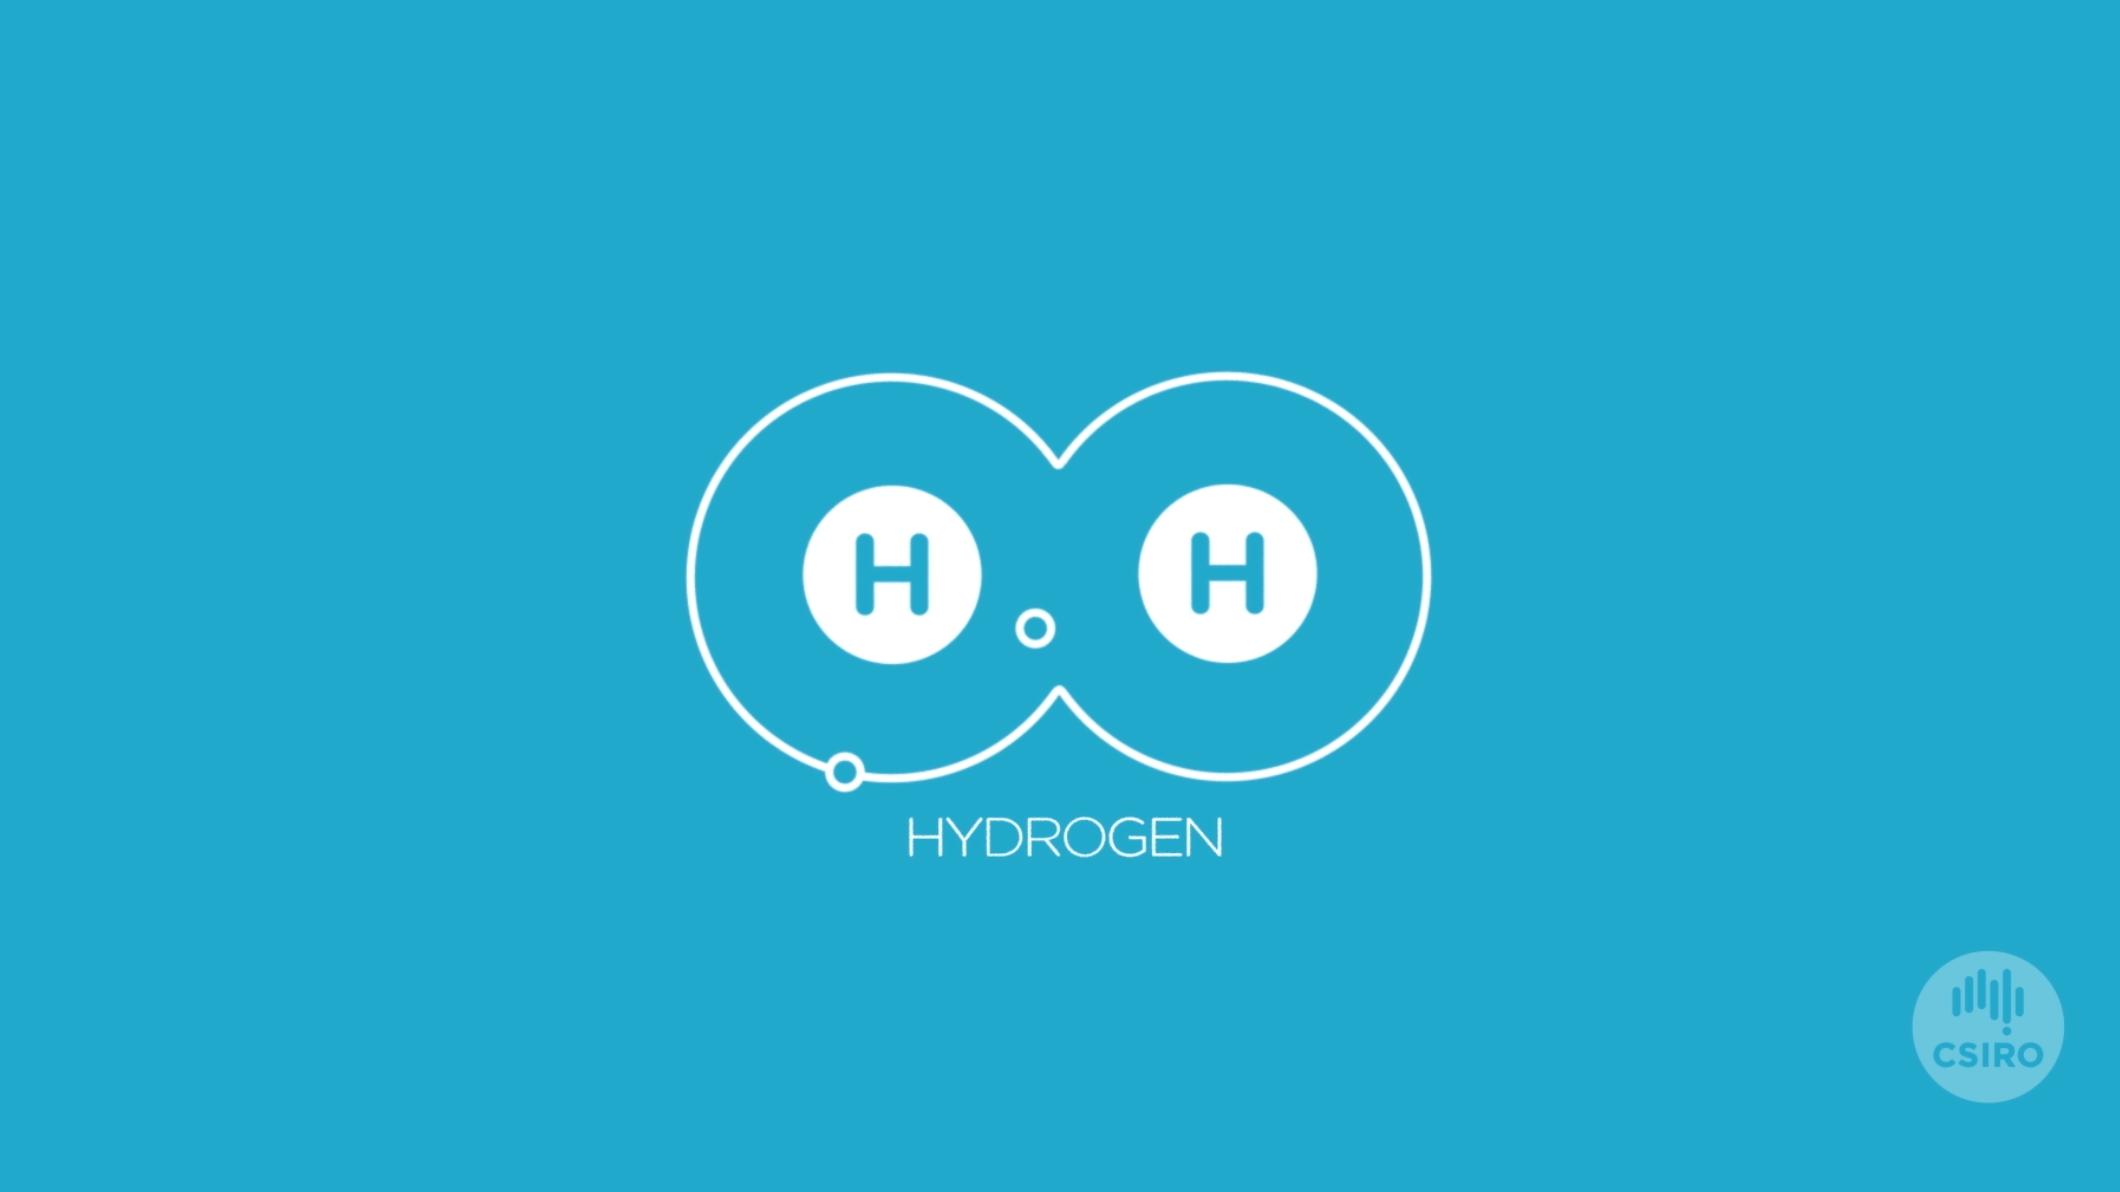 Blue infographic of two hydrogen atoms